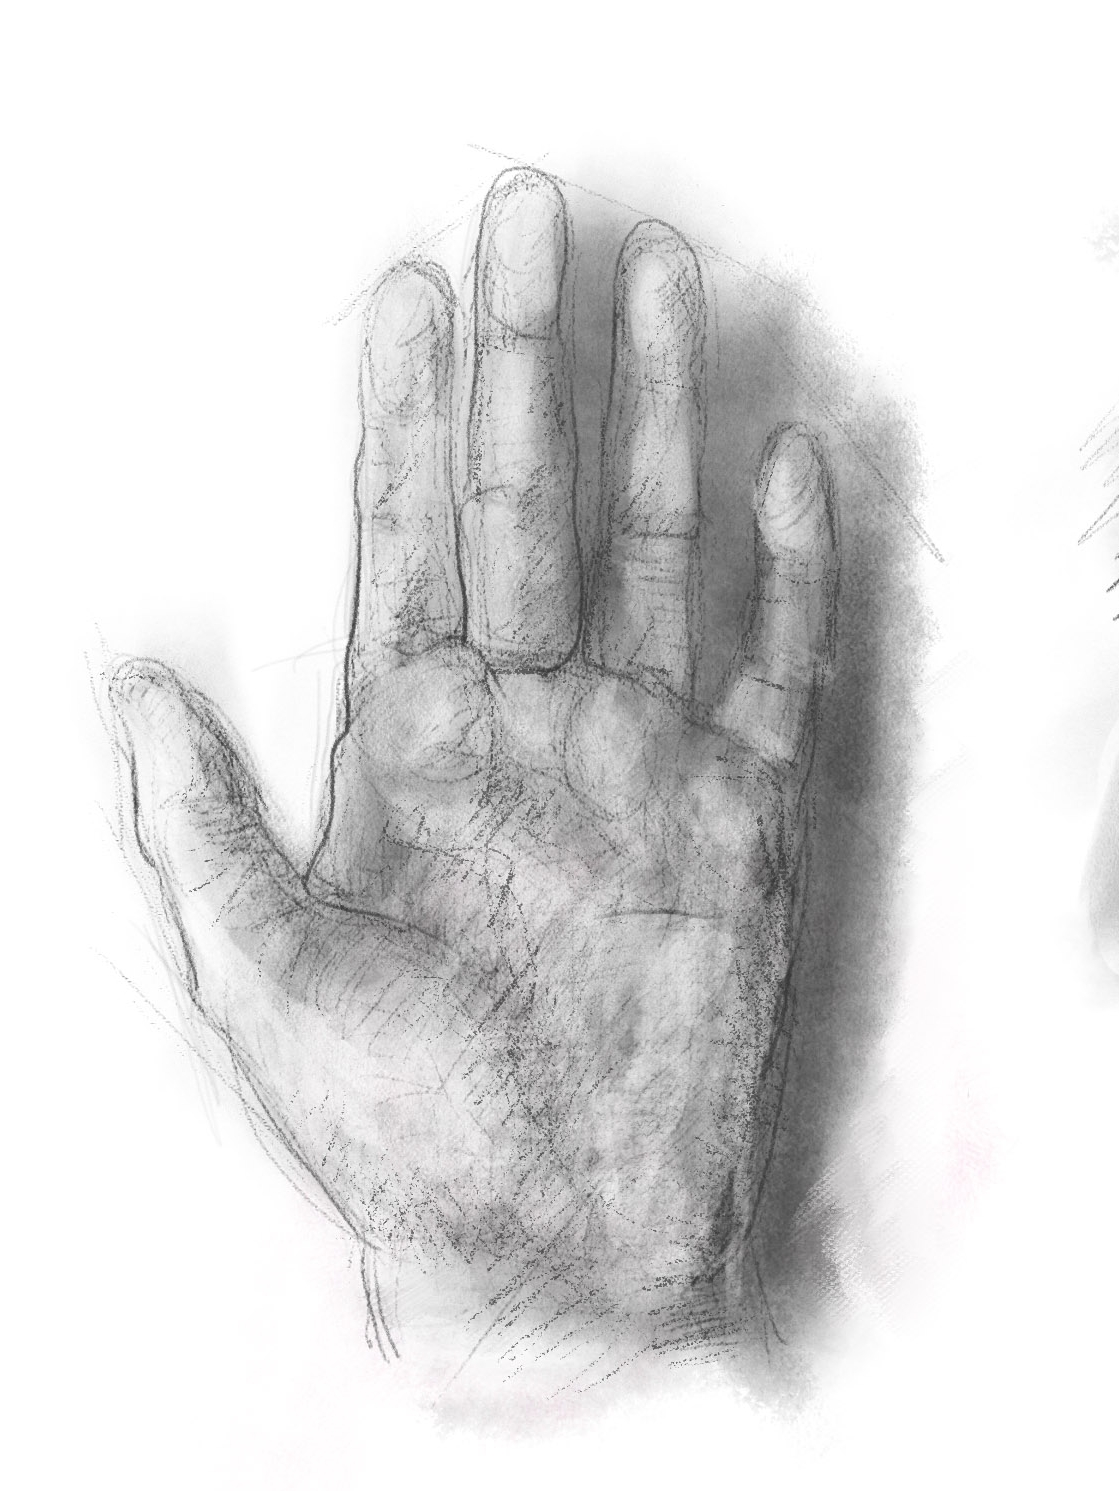 Study of a hand- digital photoshop painting